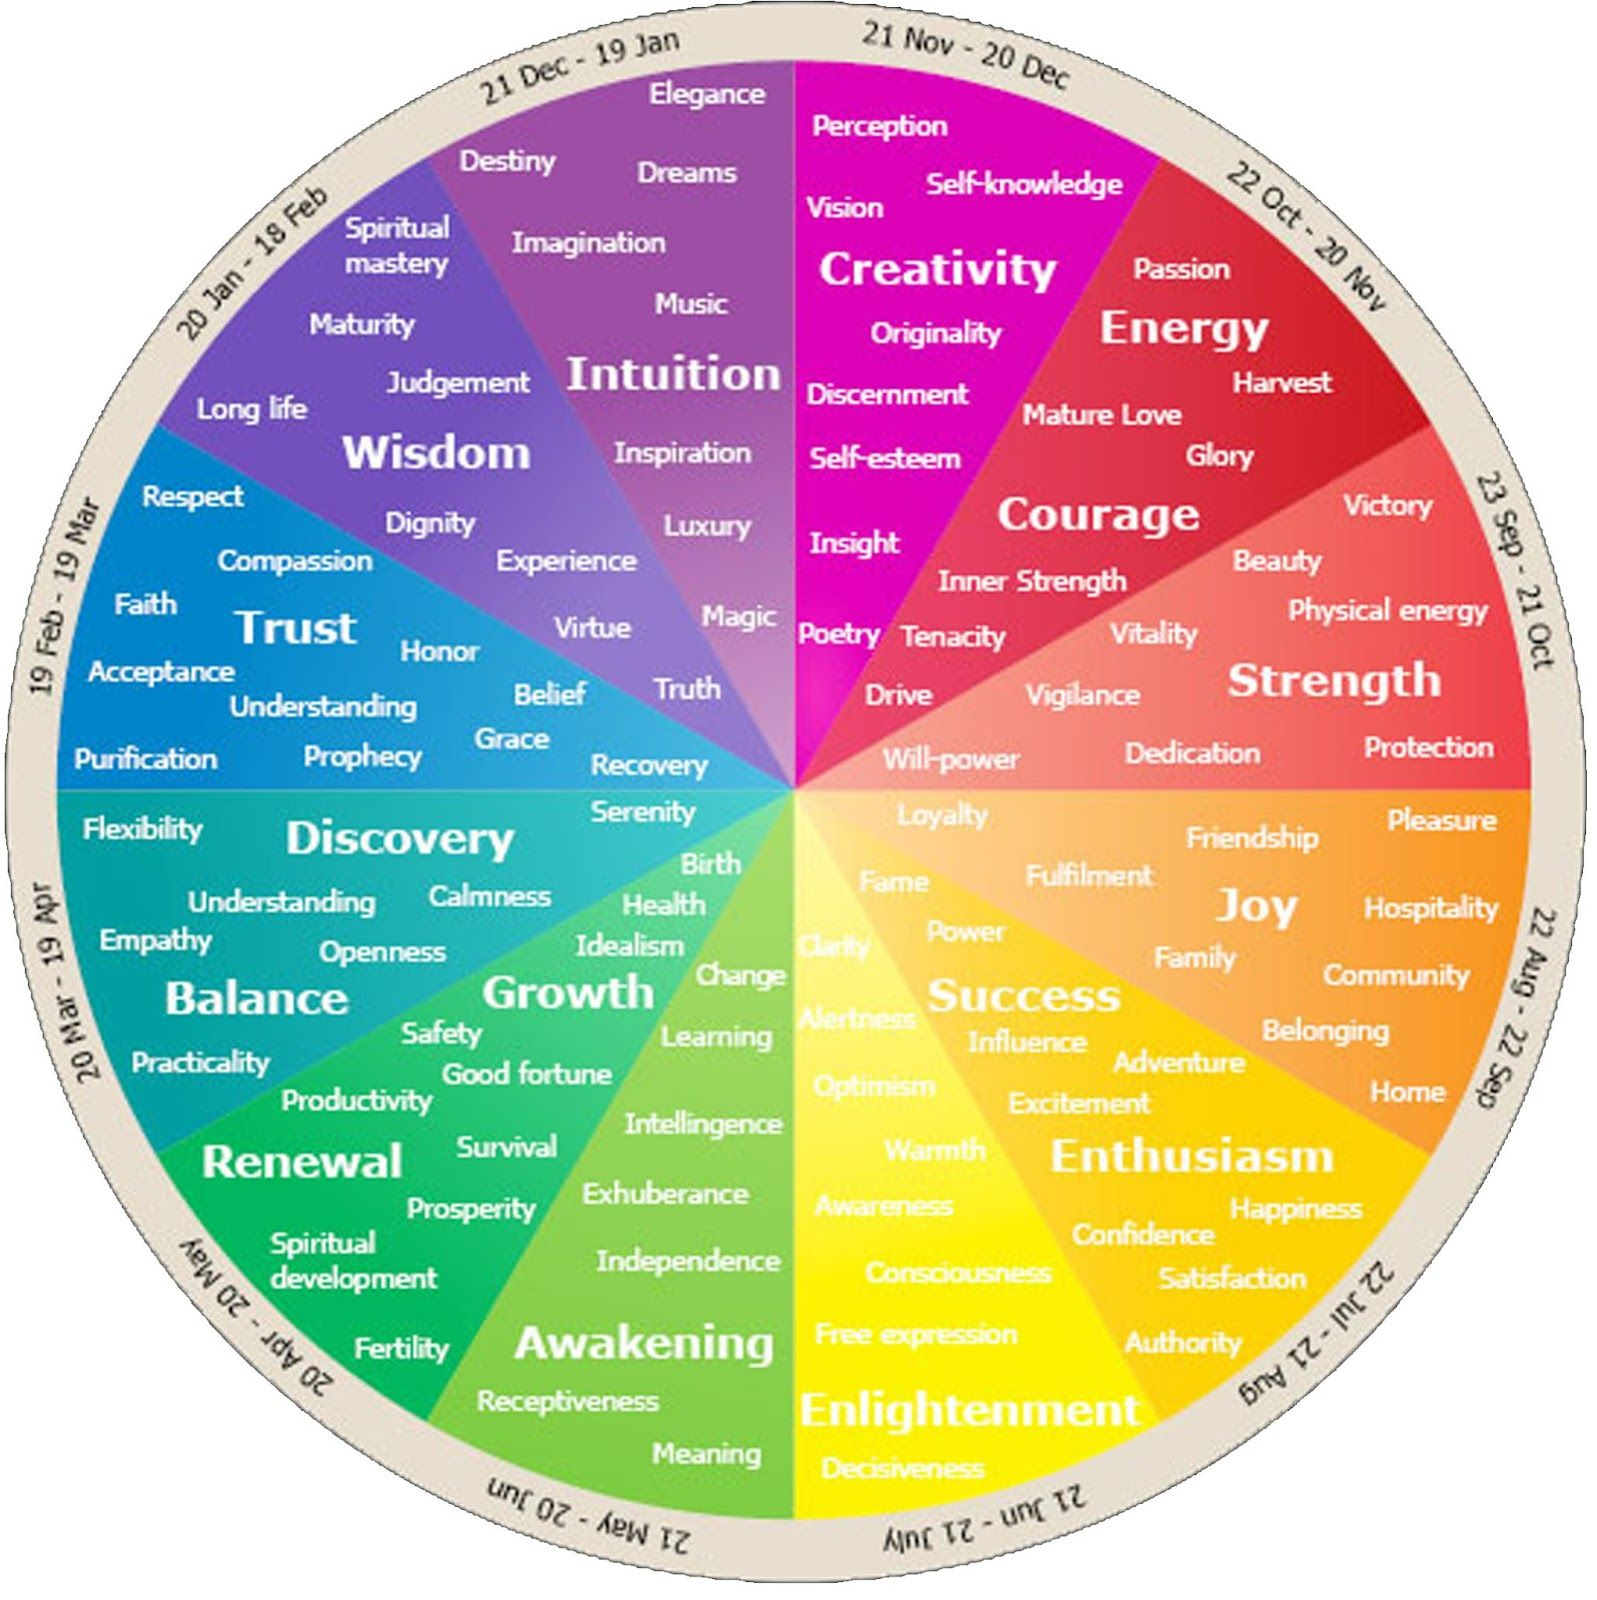 Pin By J3n On Design Color Theory In 2018 Pinterest Art